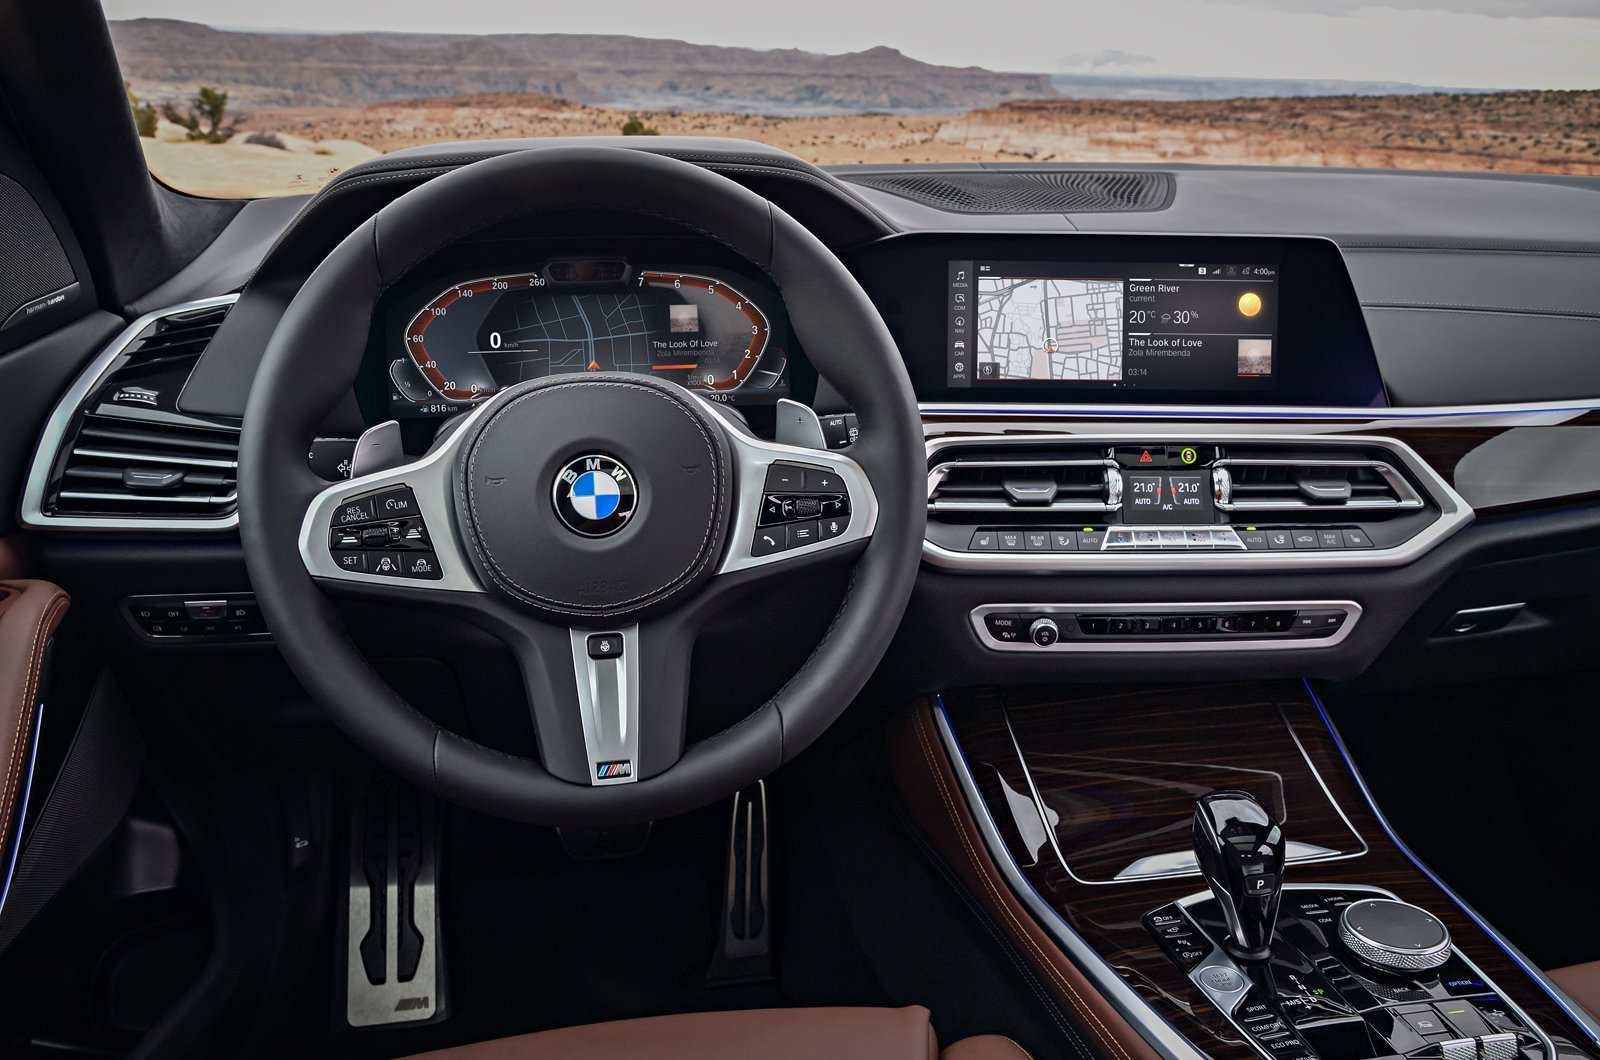 25 Gallery of New Bmw C5 2019 Review Configurations for New Bmw C5 2019 Review